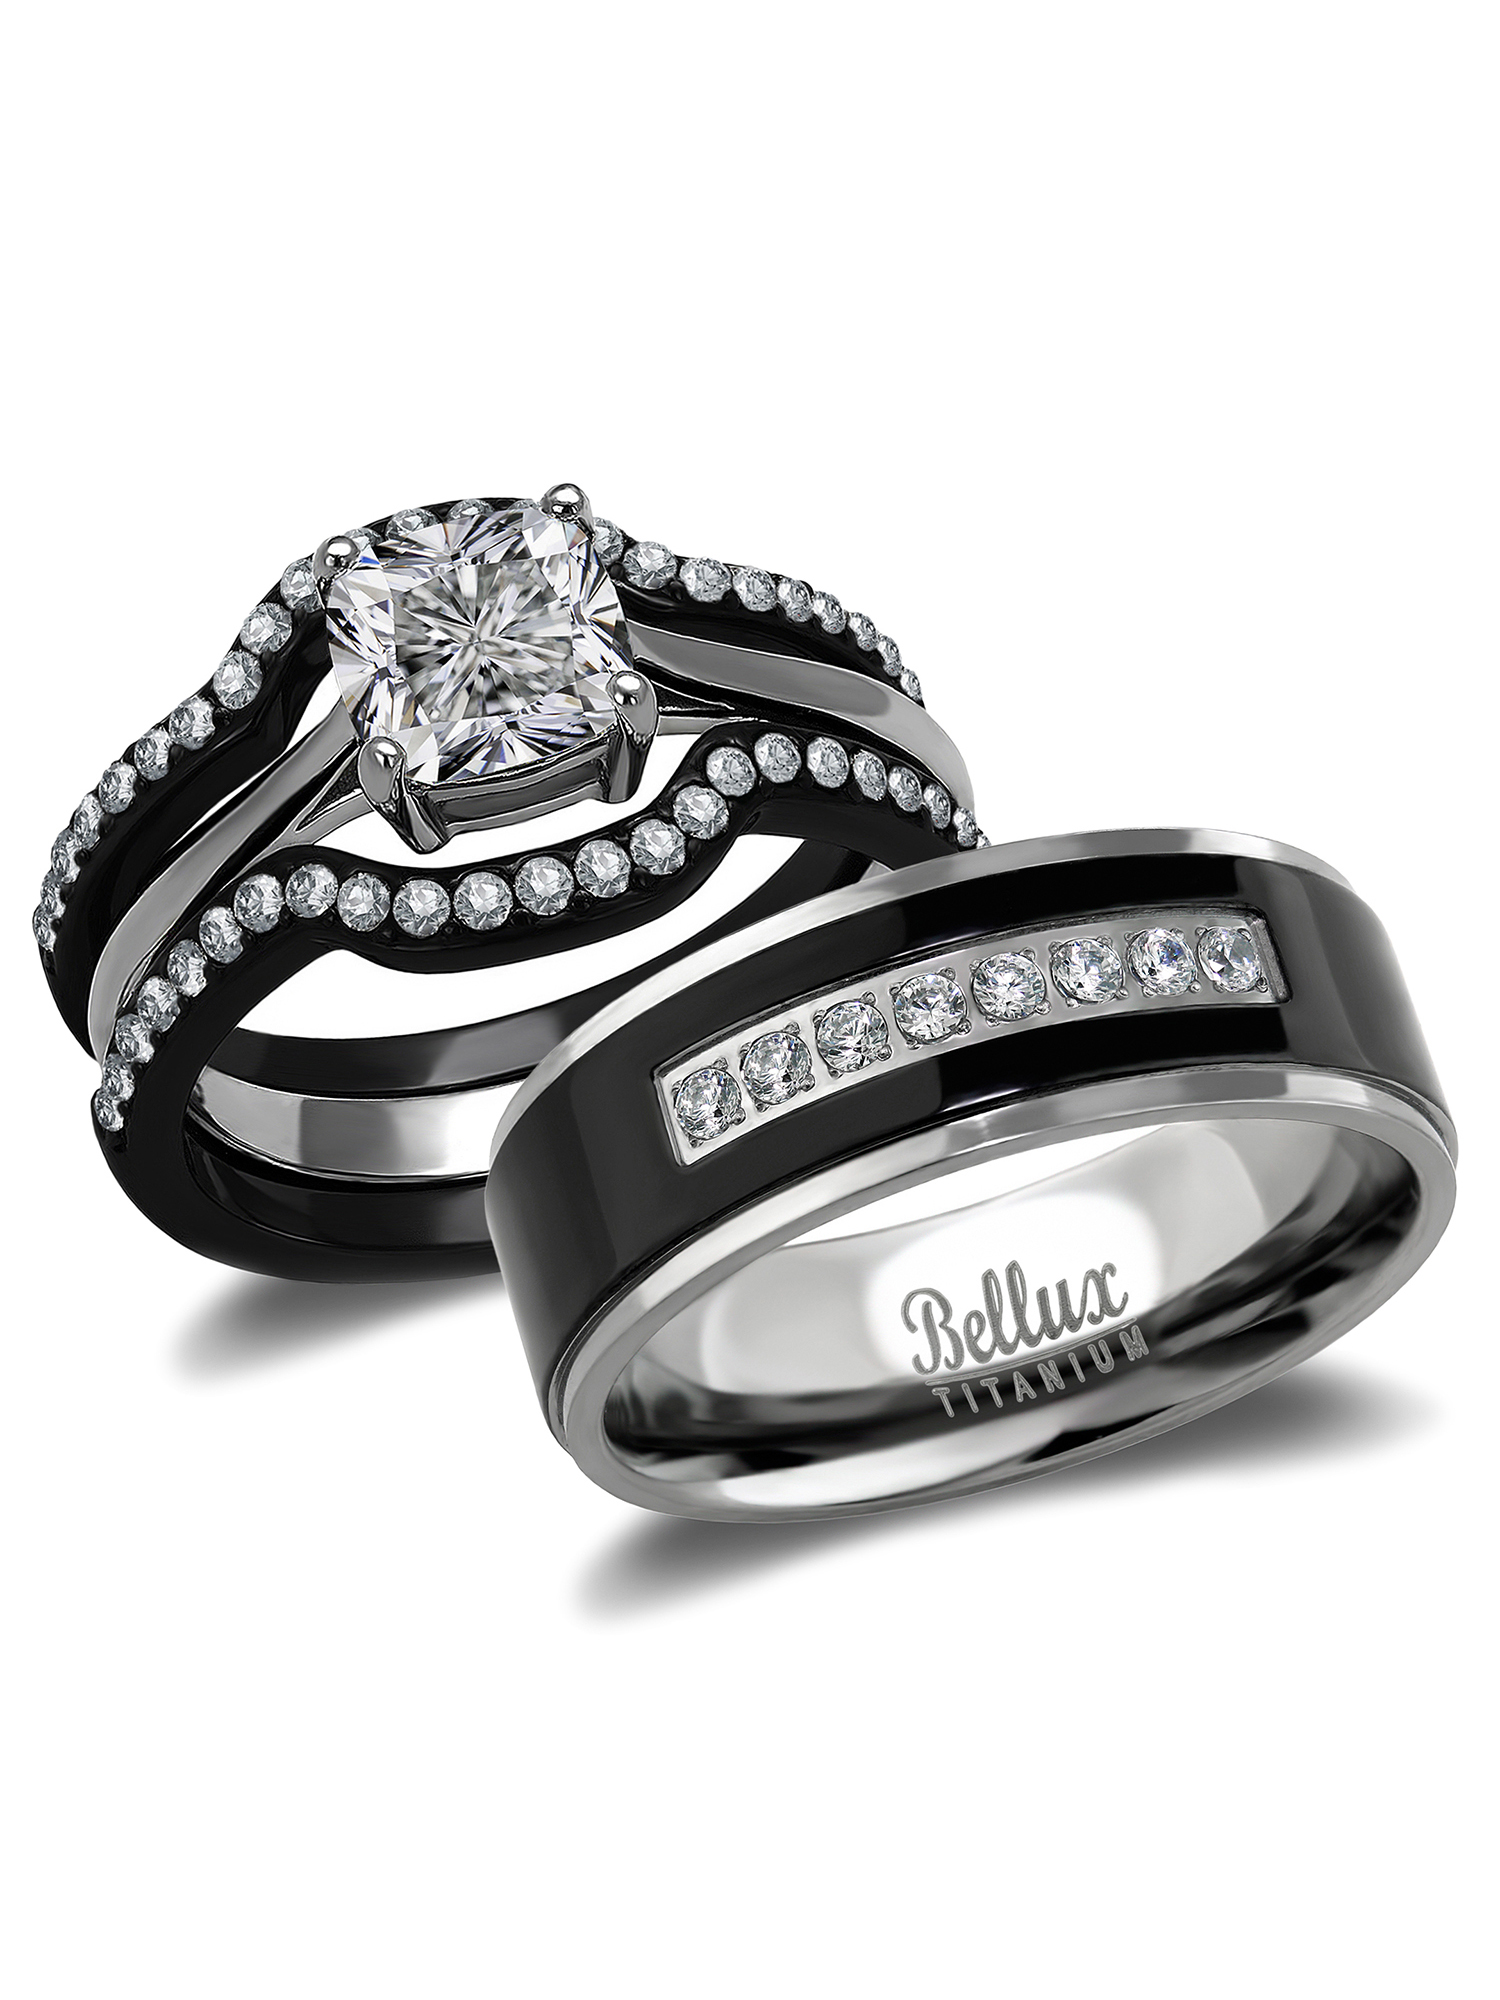 Delicieux His And Hers Wedding Ring Sets Black Stainless Steel And Titanium Bridal Set